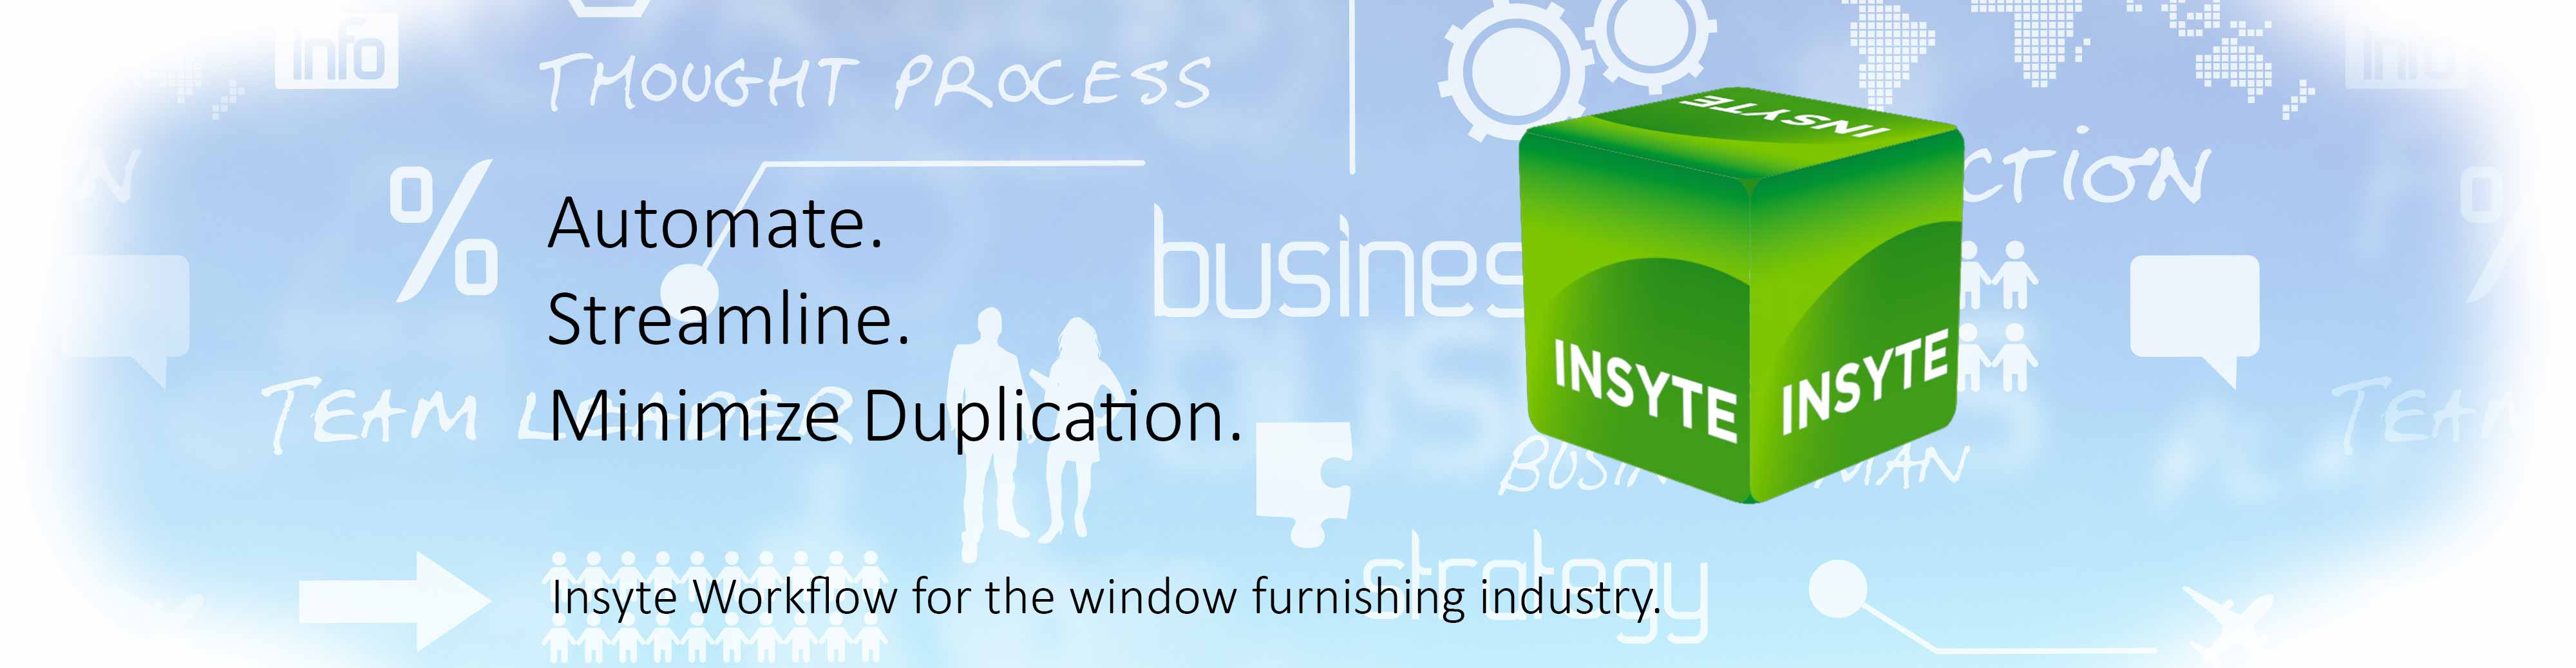 accent software tablet solution for the window furnishing industry